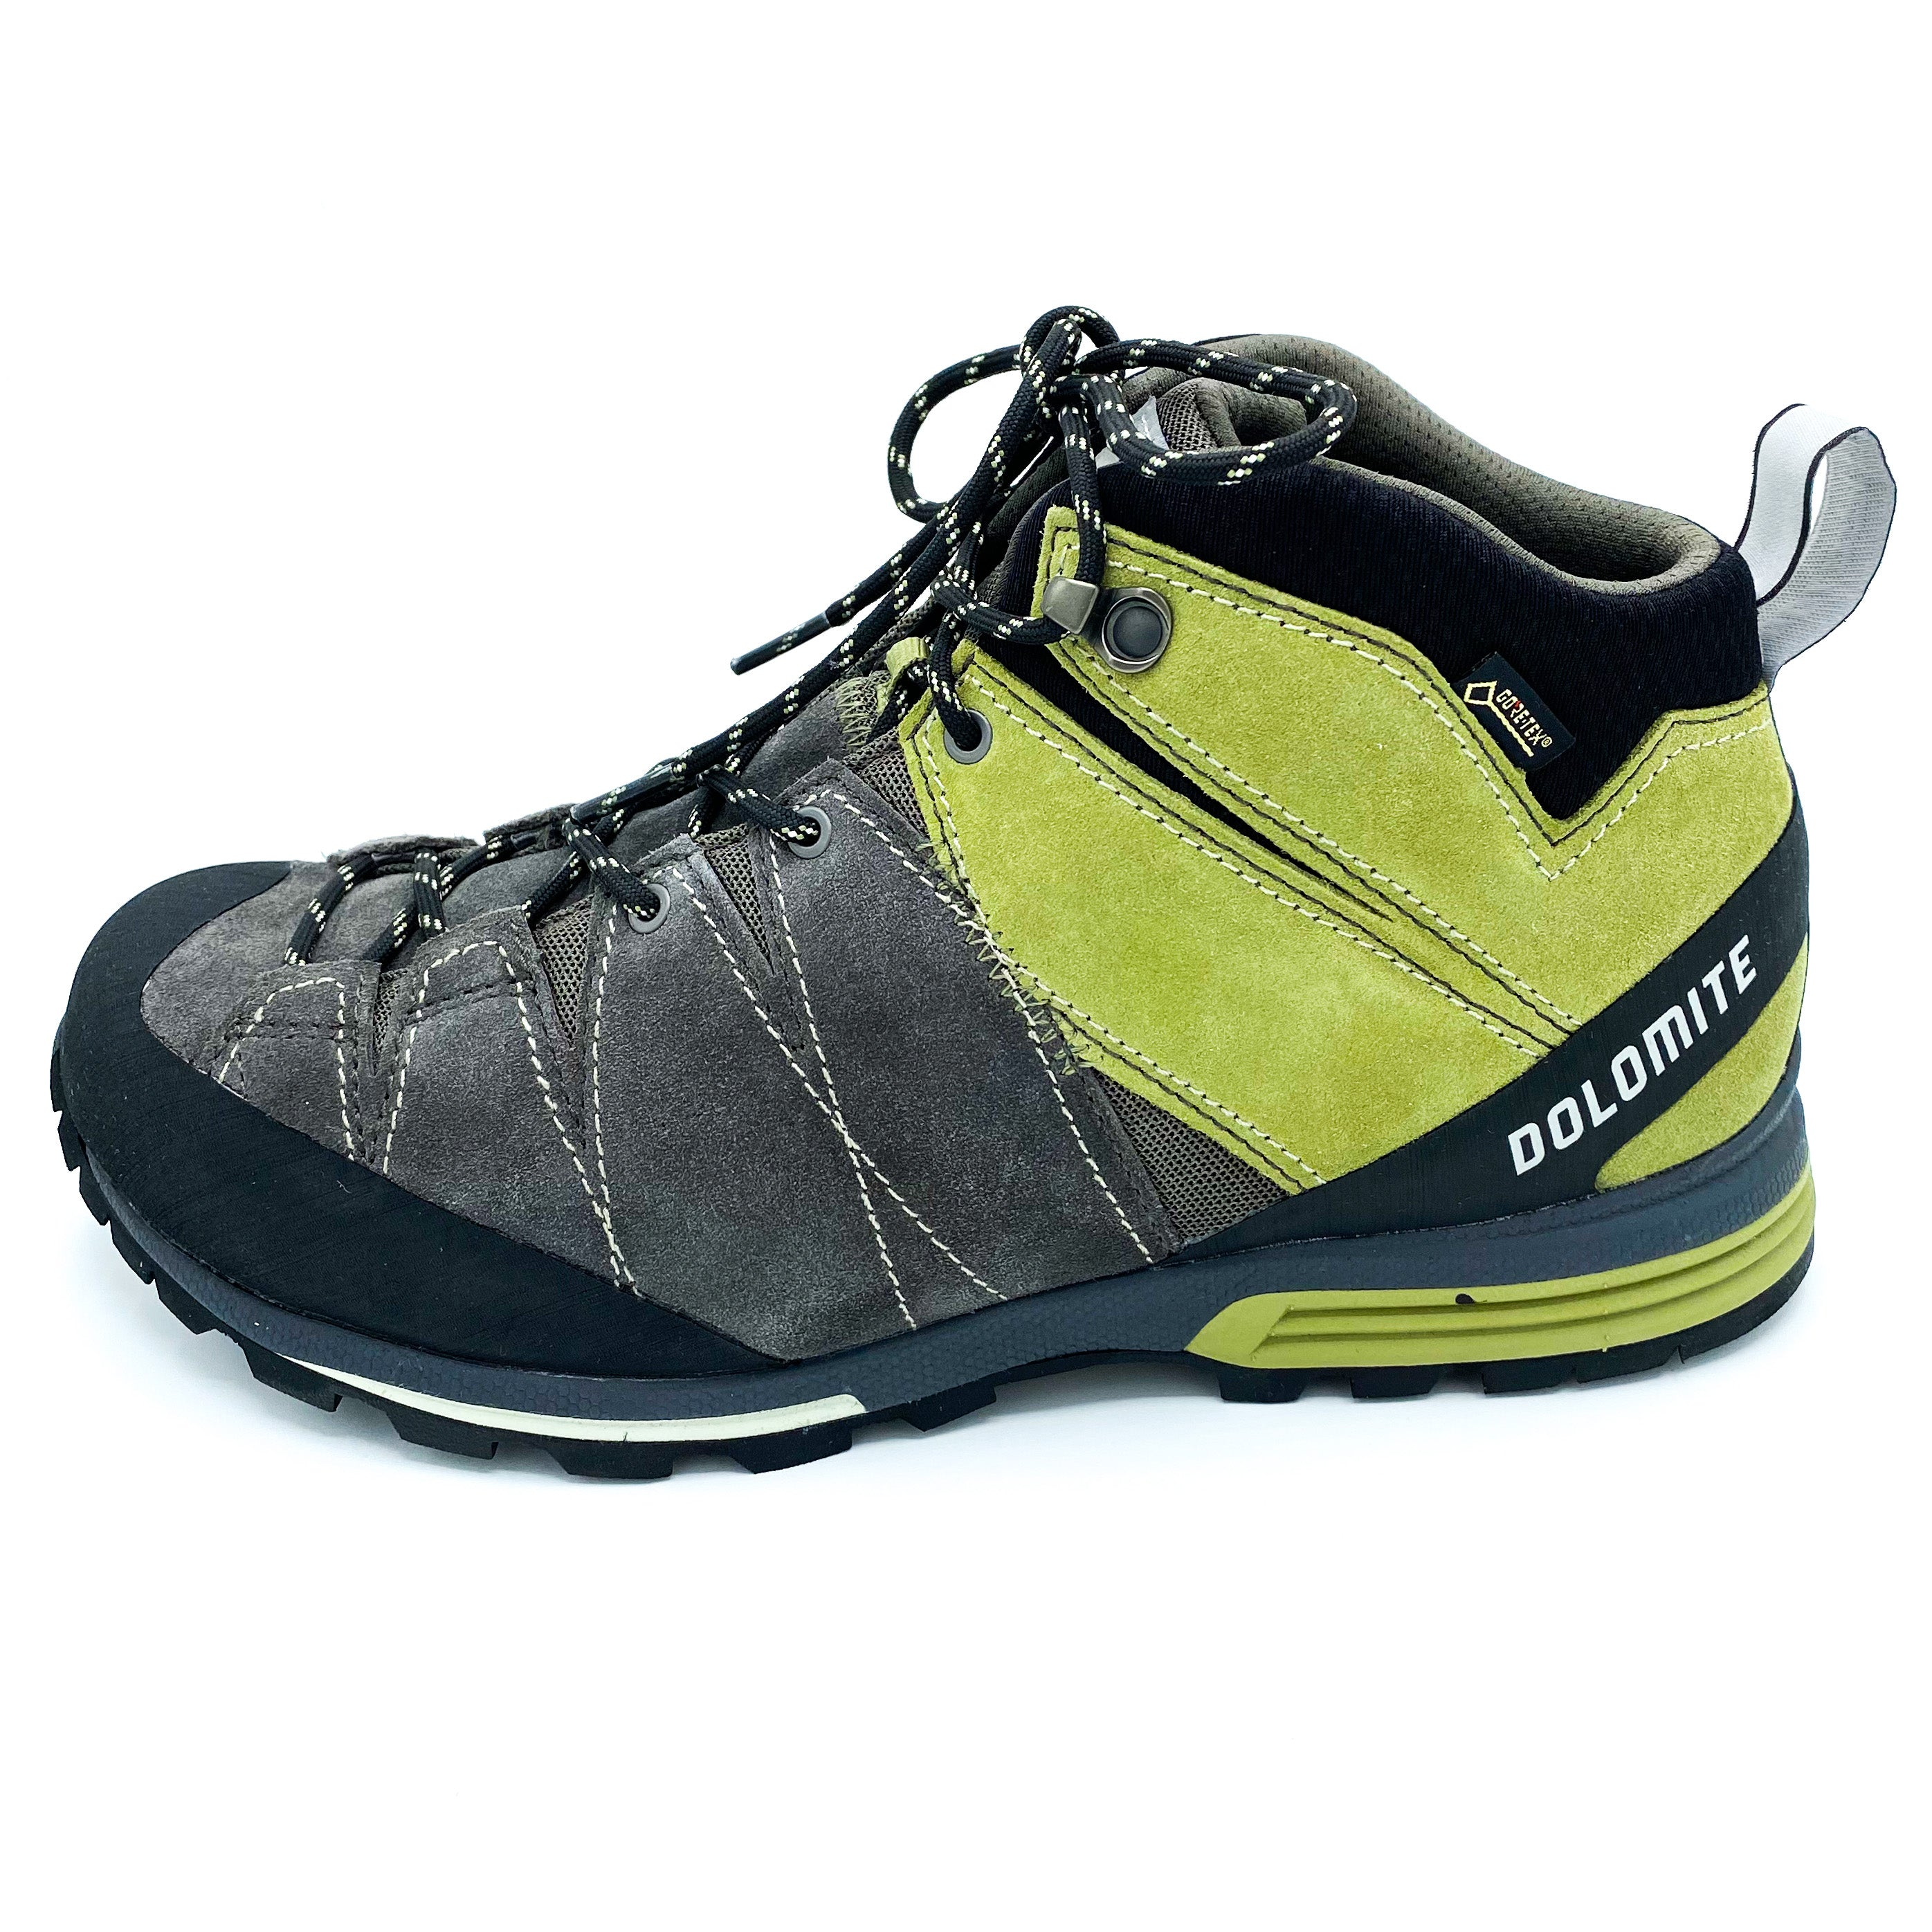 Dolomite diagonal pro gtx grey/green